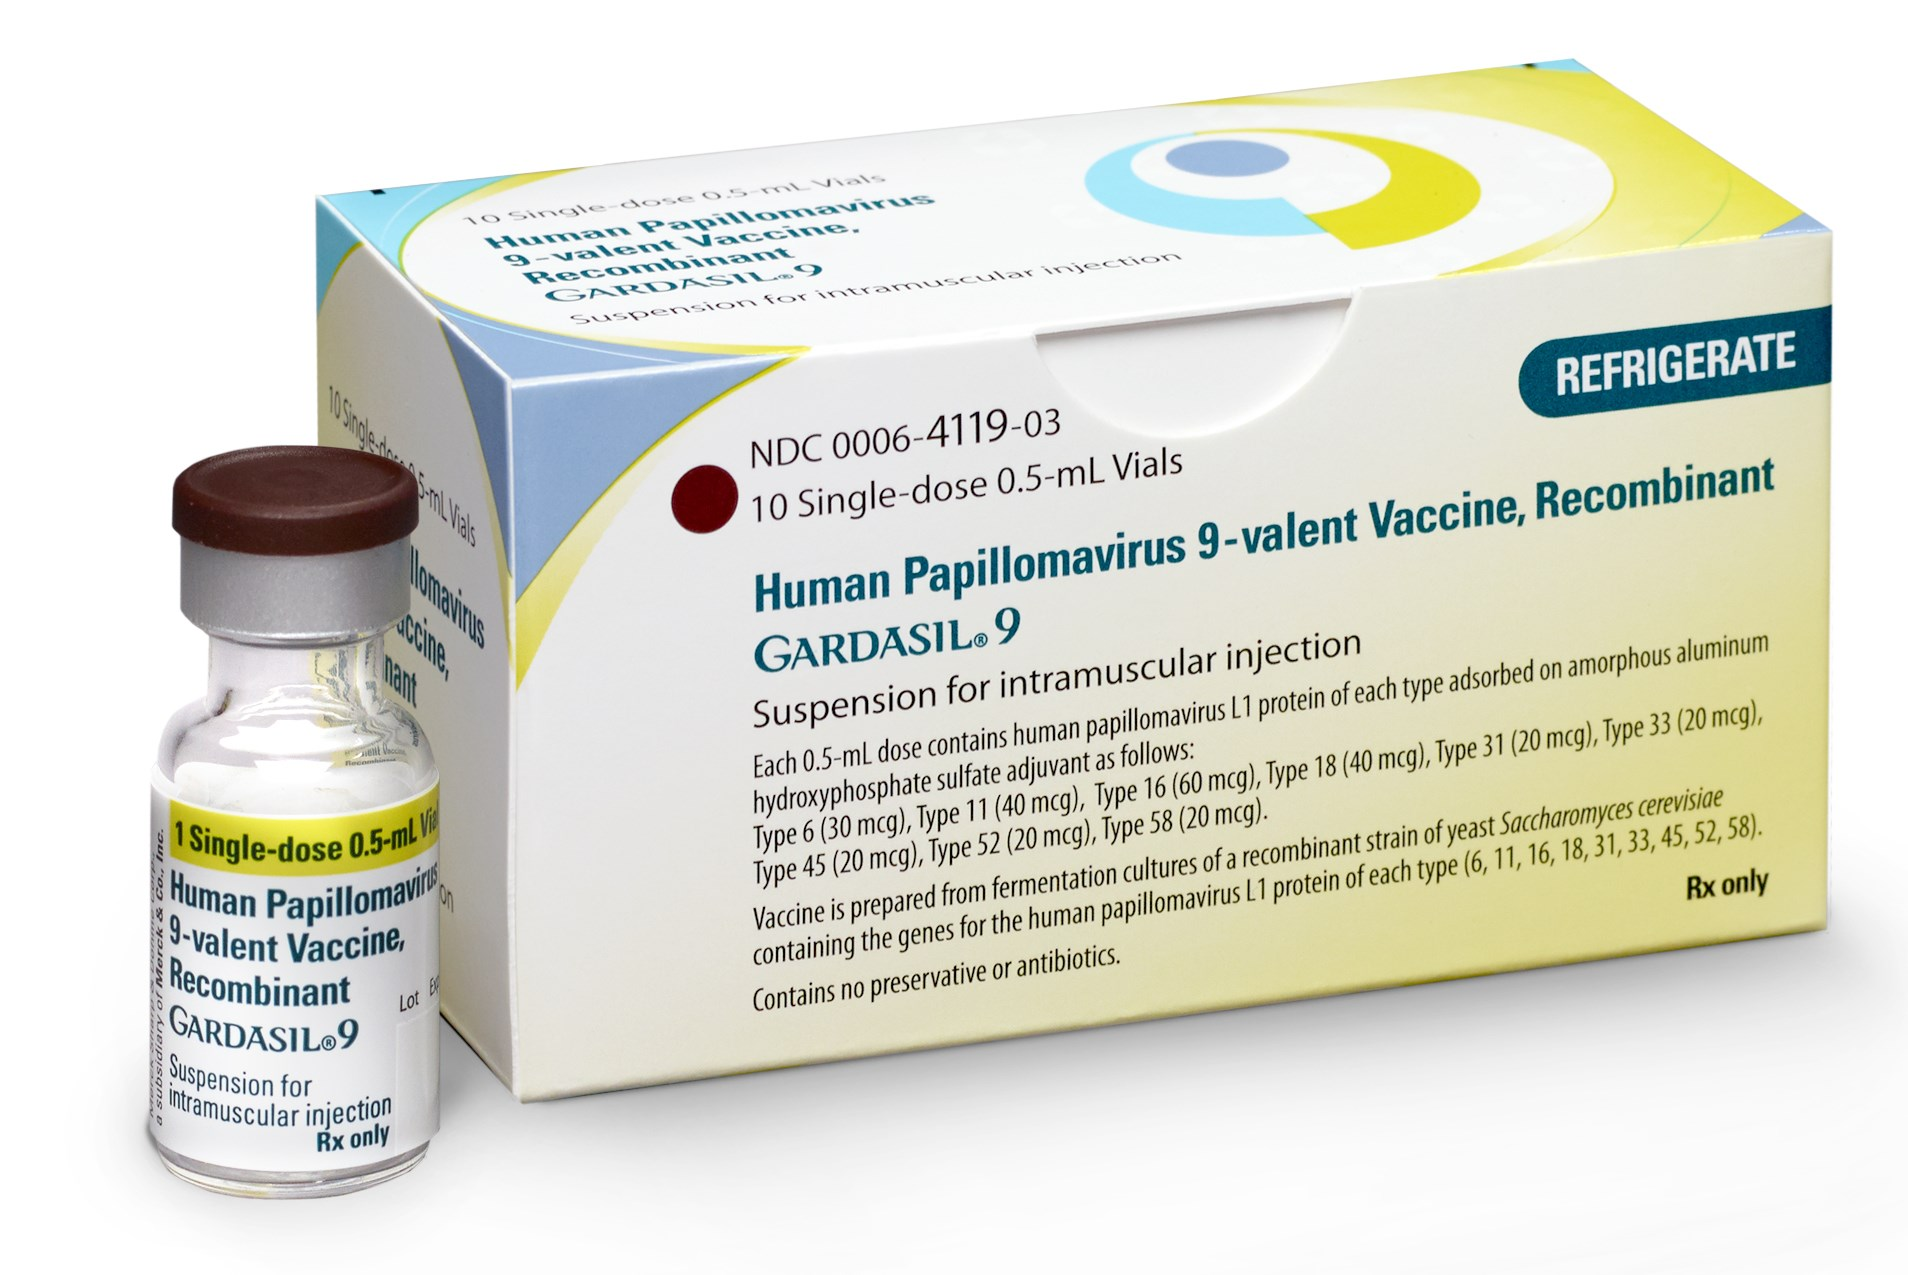 Gardasil 9 Indication Now Covers More Male Patients